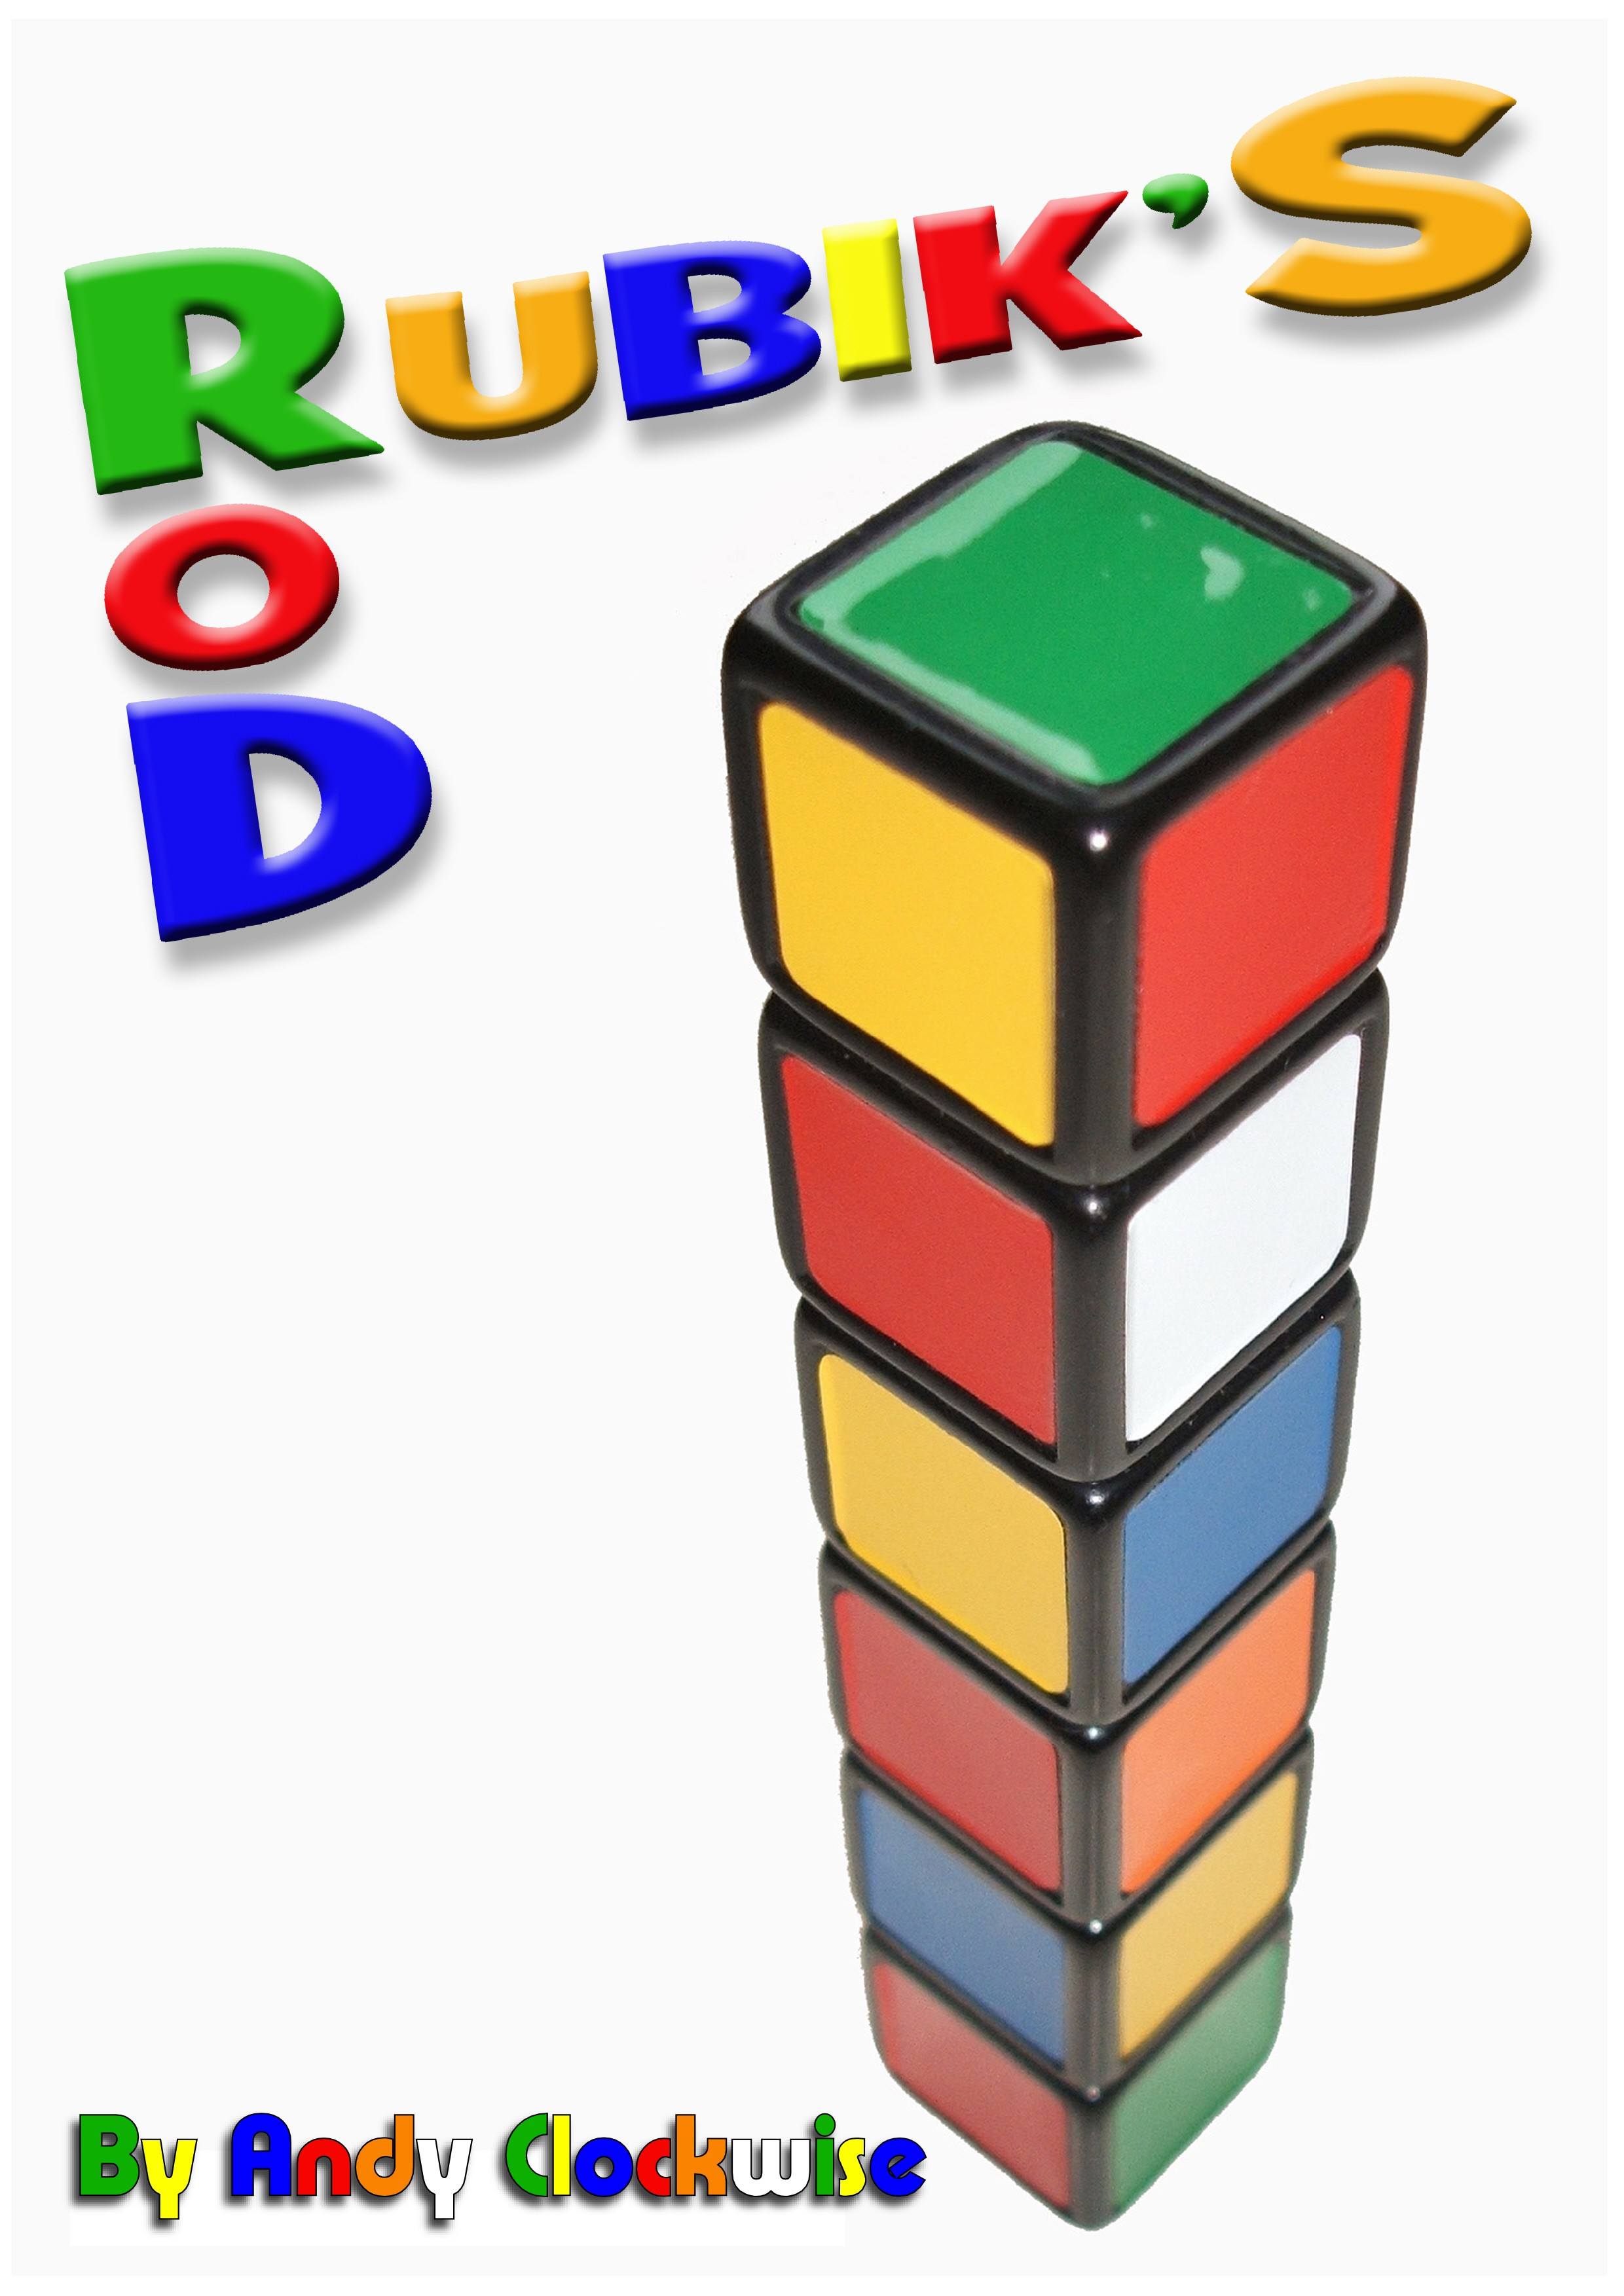 Rubik's Rod – Andy Clockwise